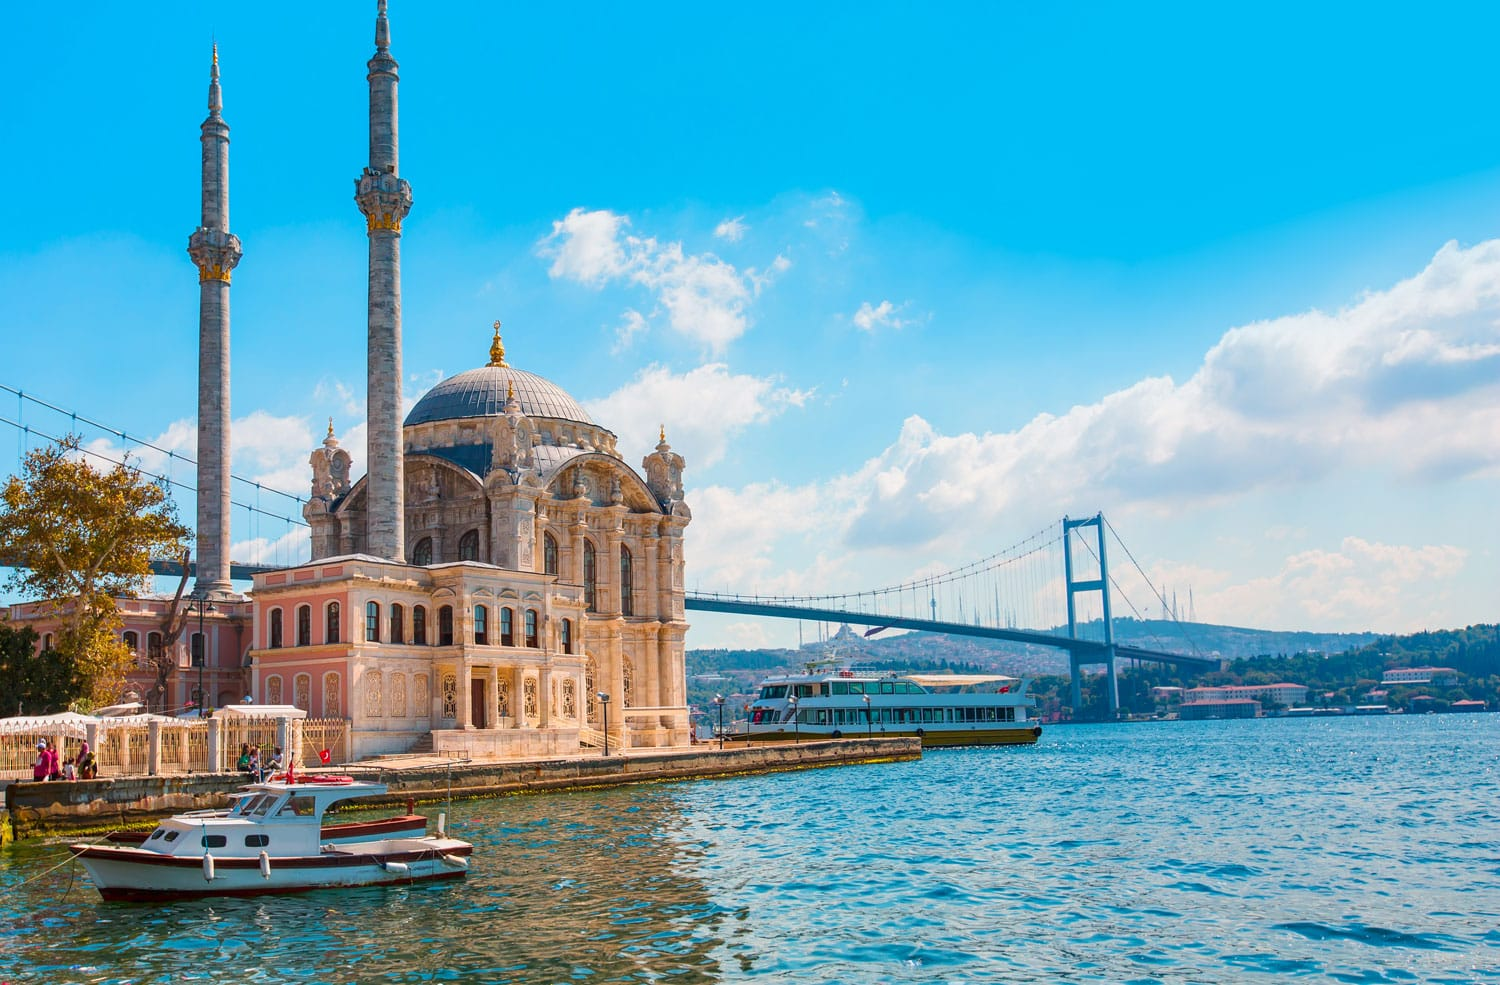 Ortakoy mosque and Bosphorus bridge, Istanbul, Turkey